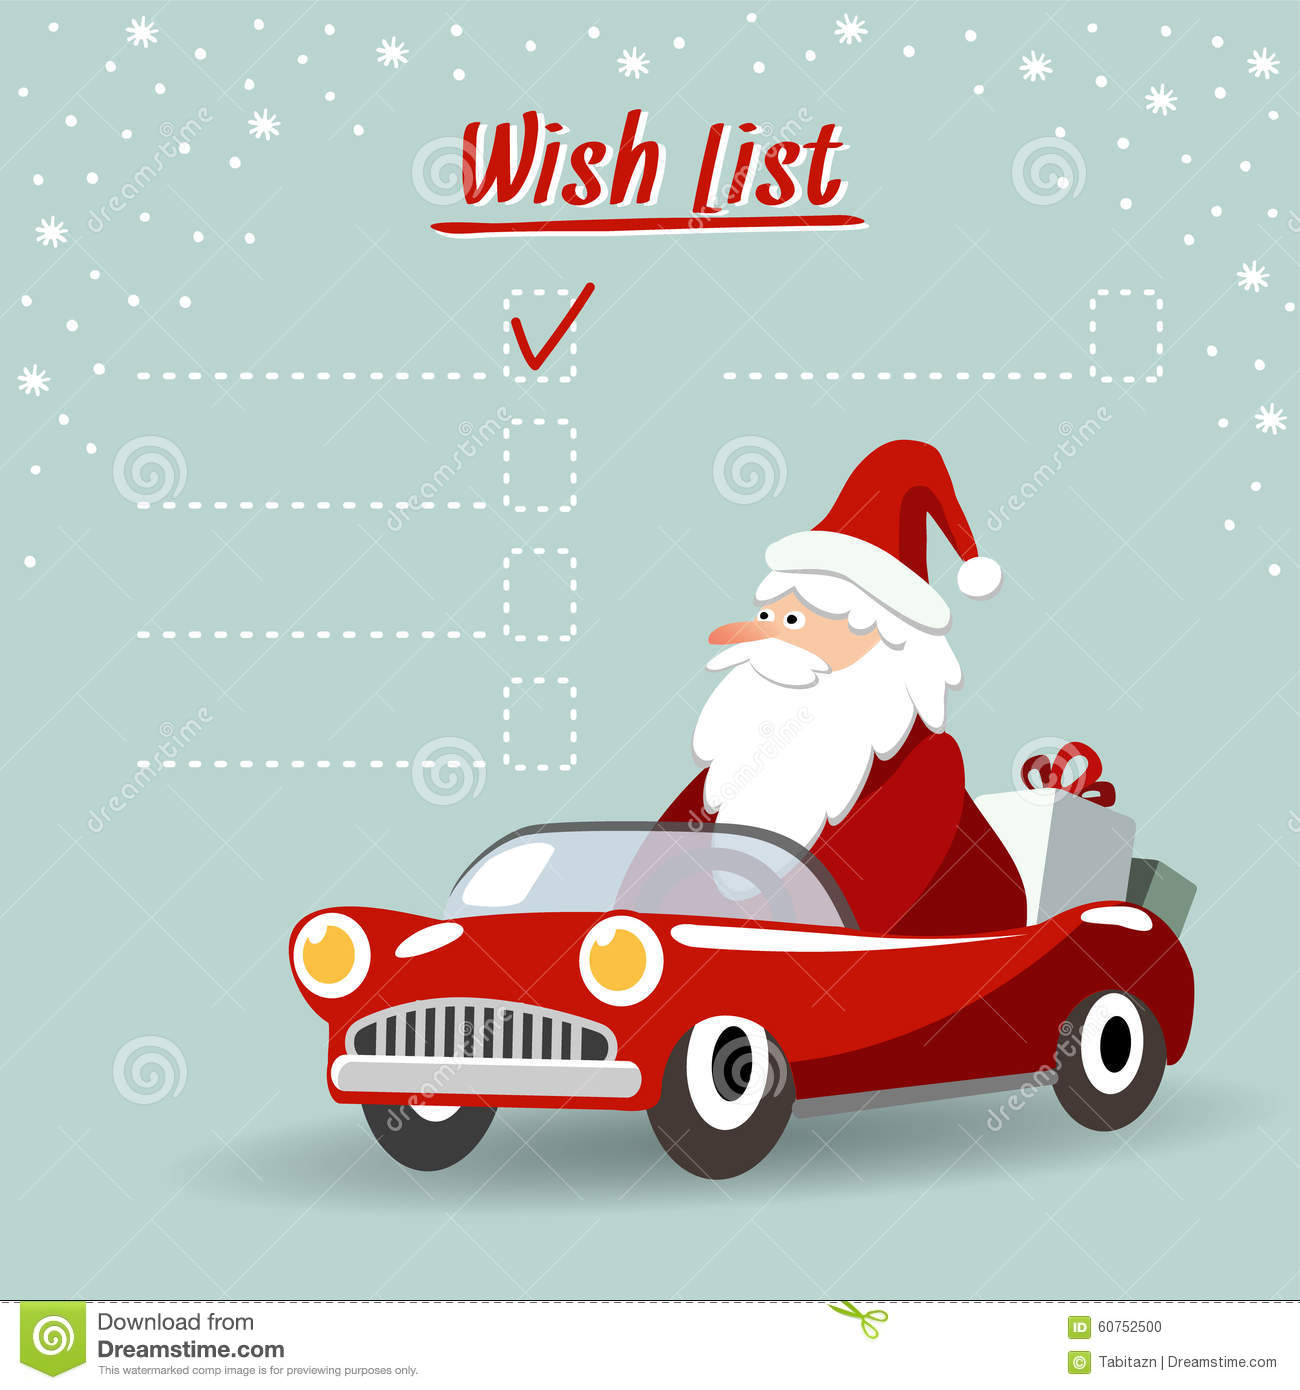 Christmas Sports Car.Cute Christmas Greeting Card Wish List With Santa Claus